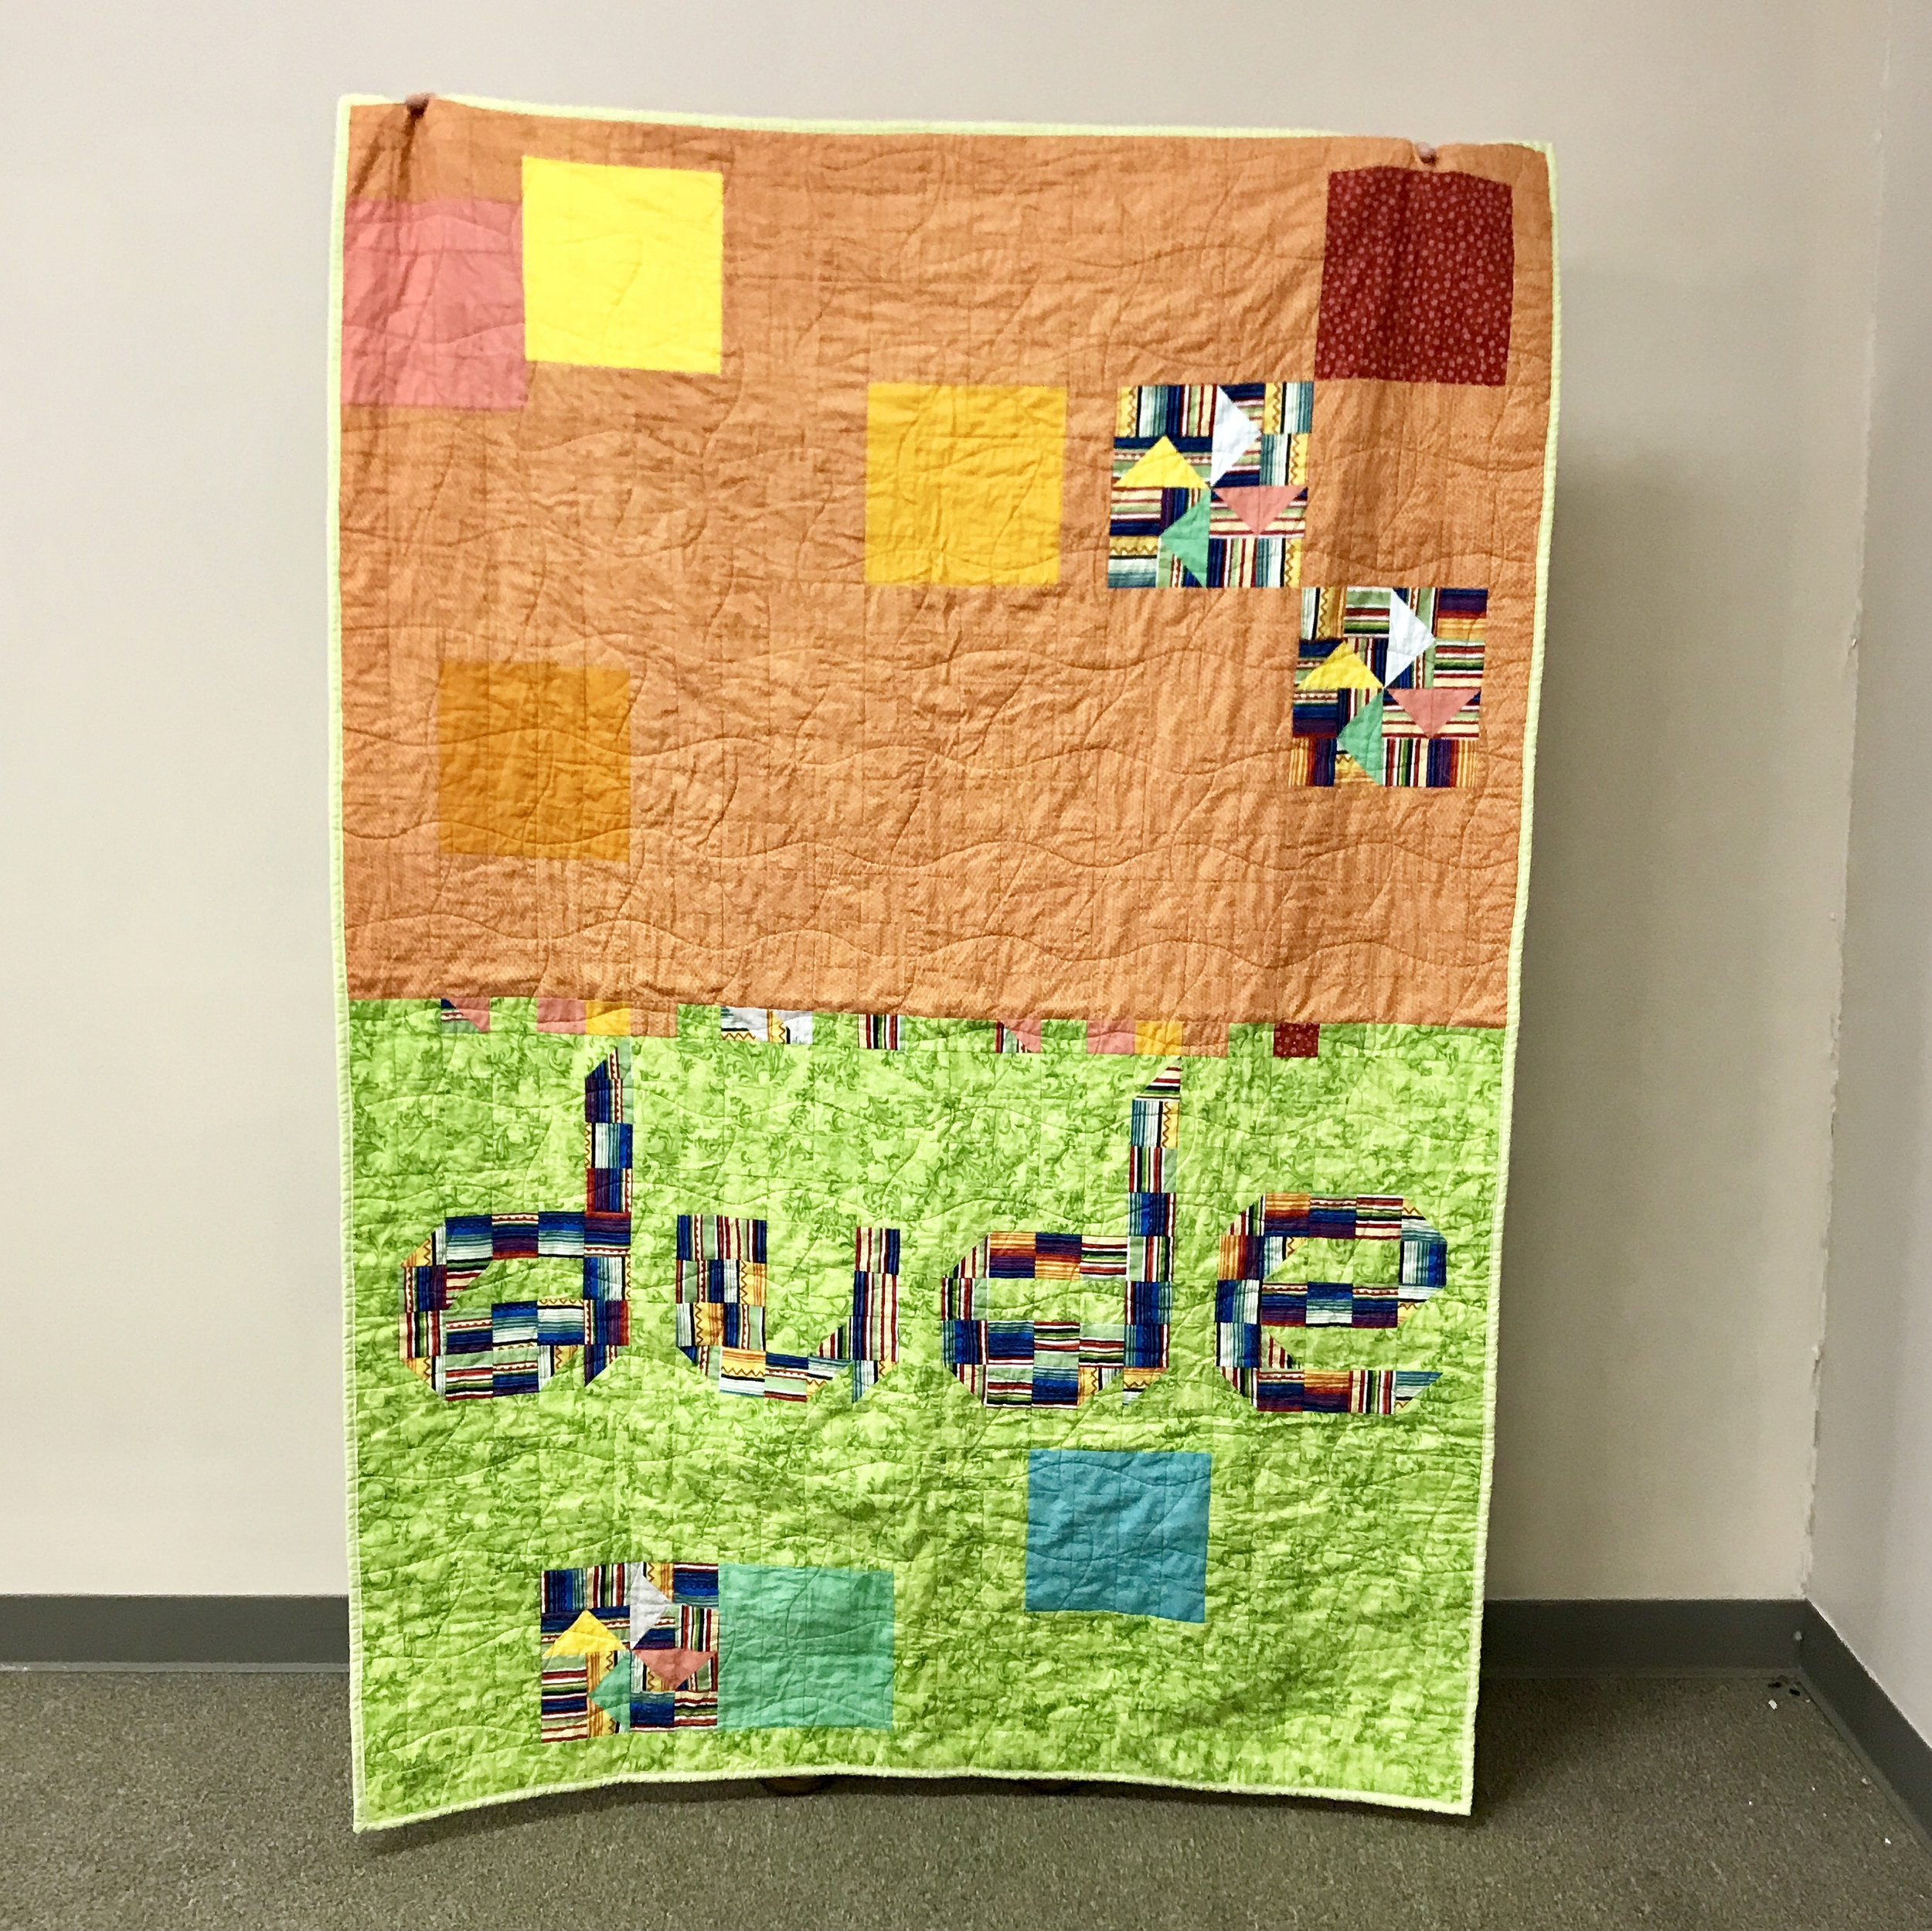 Quilt by Sherry Leary